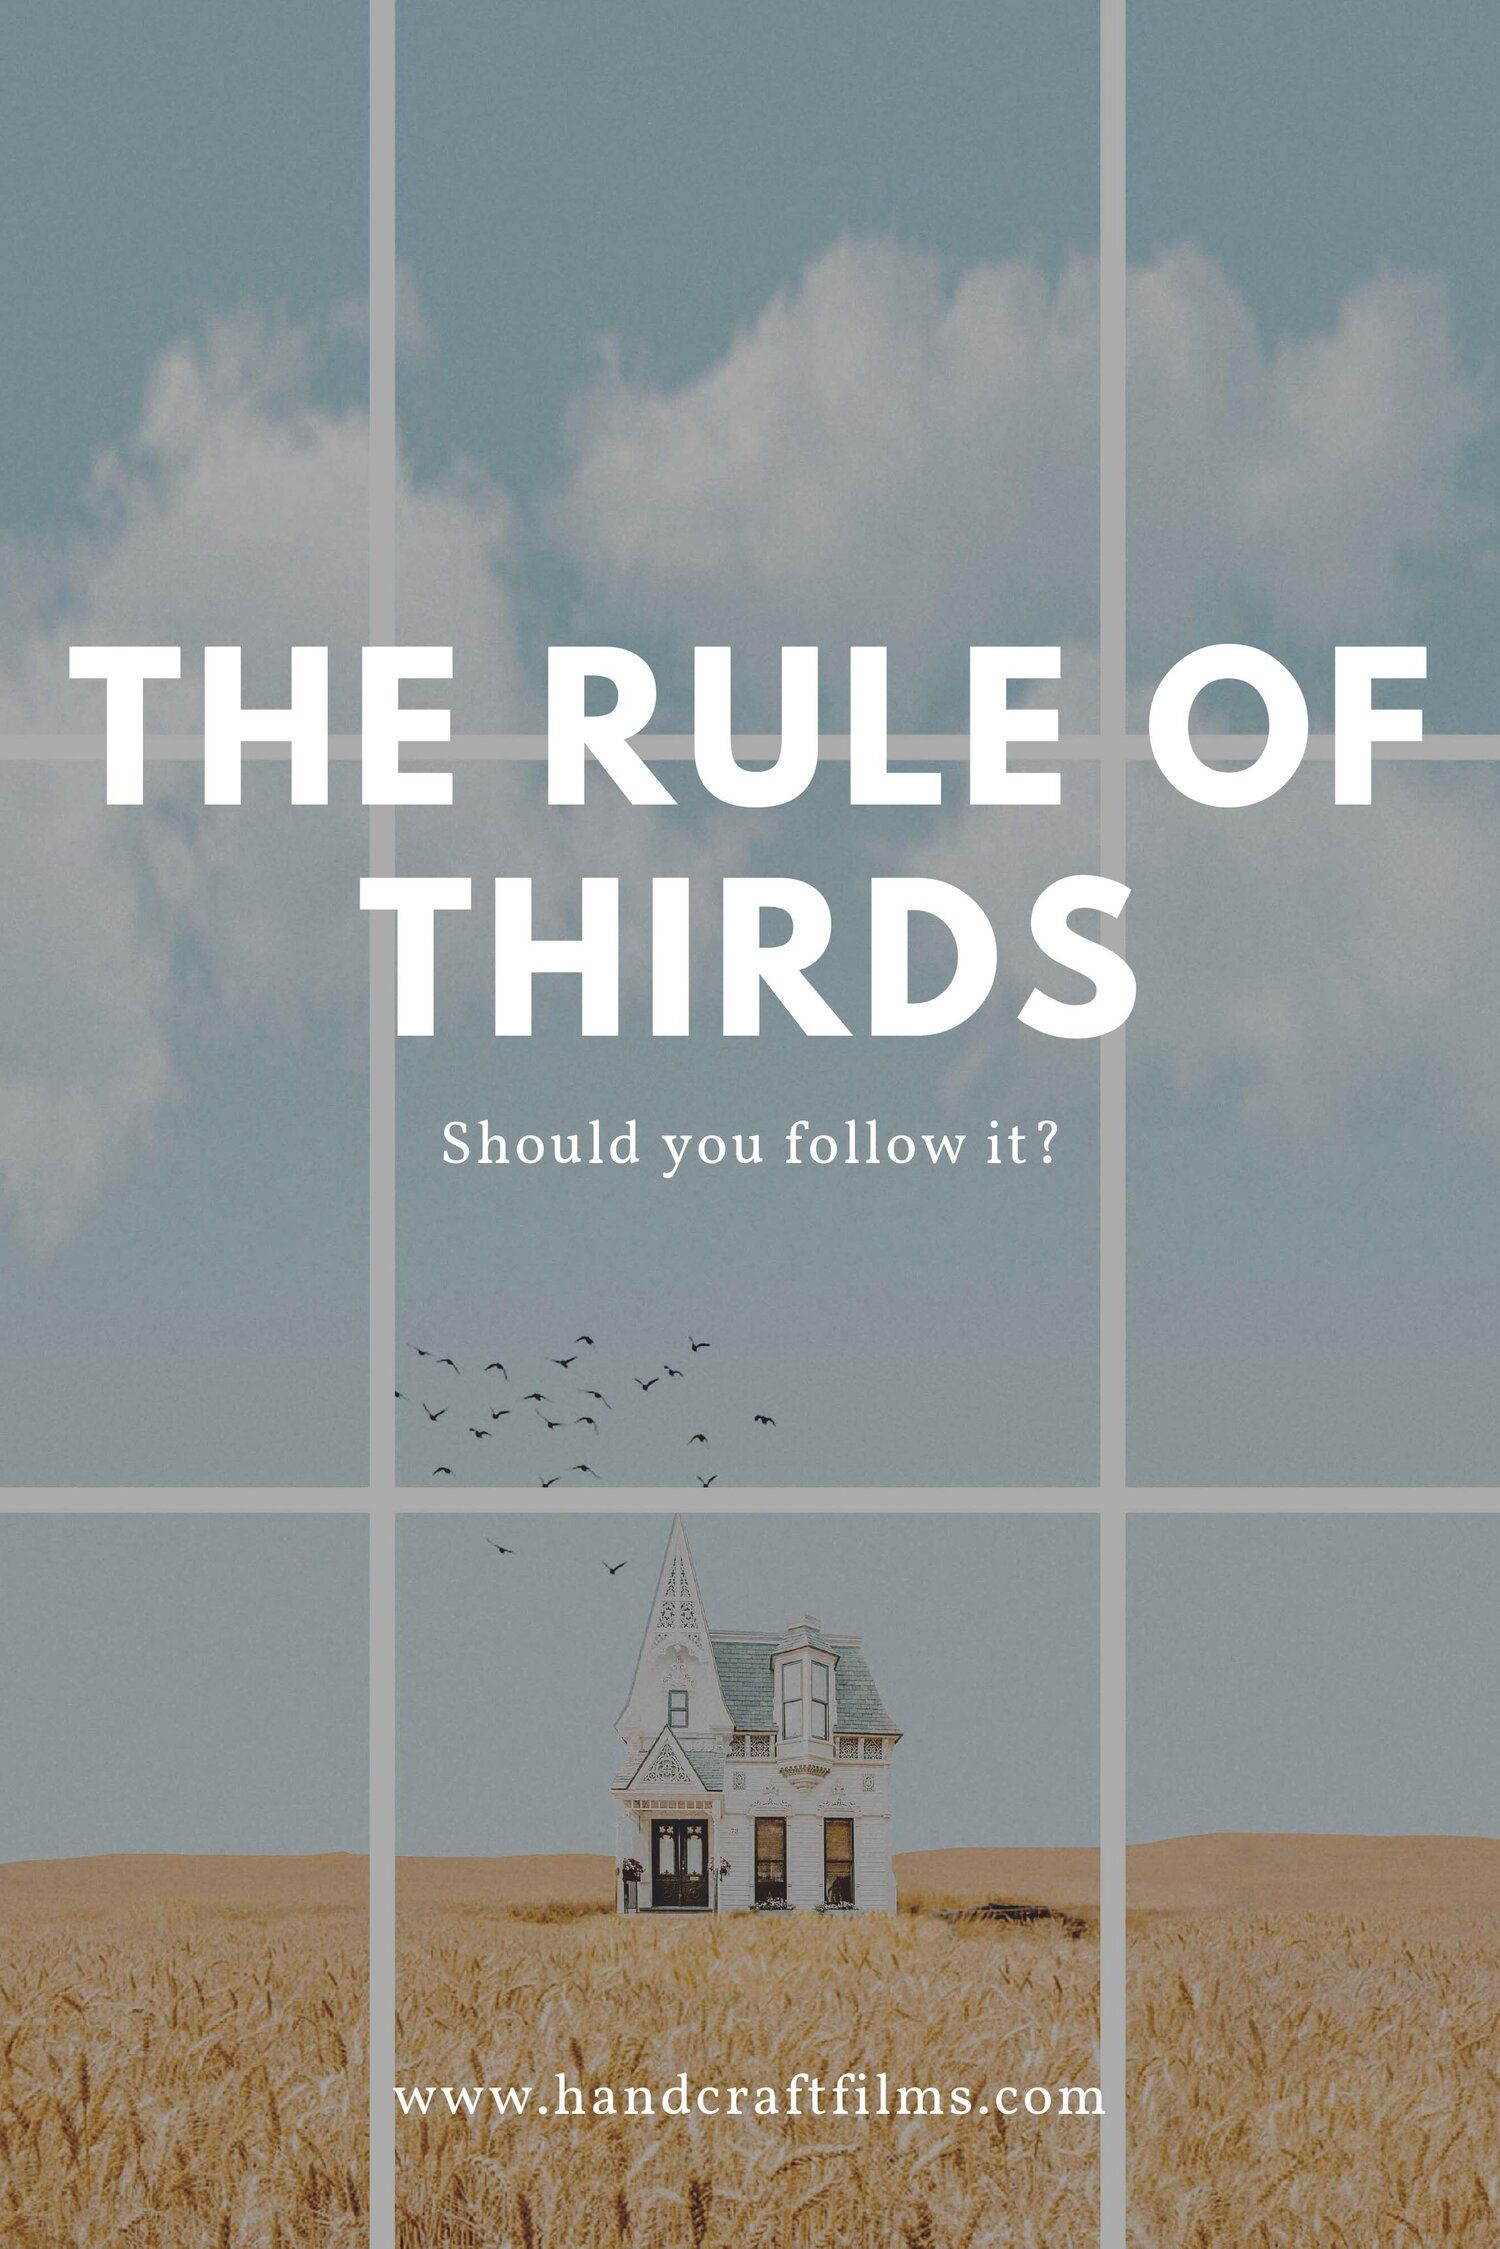 The rule of thirds - not just for beginners. #dslrcamera #dslrvideo #dslrsettings #camerasettings #videotutorial #filmmaking #family #dslrfilm #cameratutorial #howto #cameratips #dlsrtips #filmmakingtutorial #lifestylefilms #composition #ruleofthirds #photography #photographer #filmmakers #framing